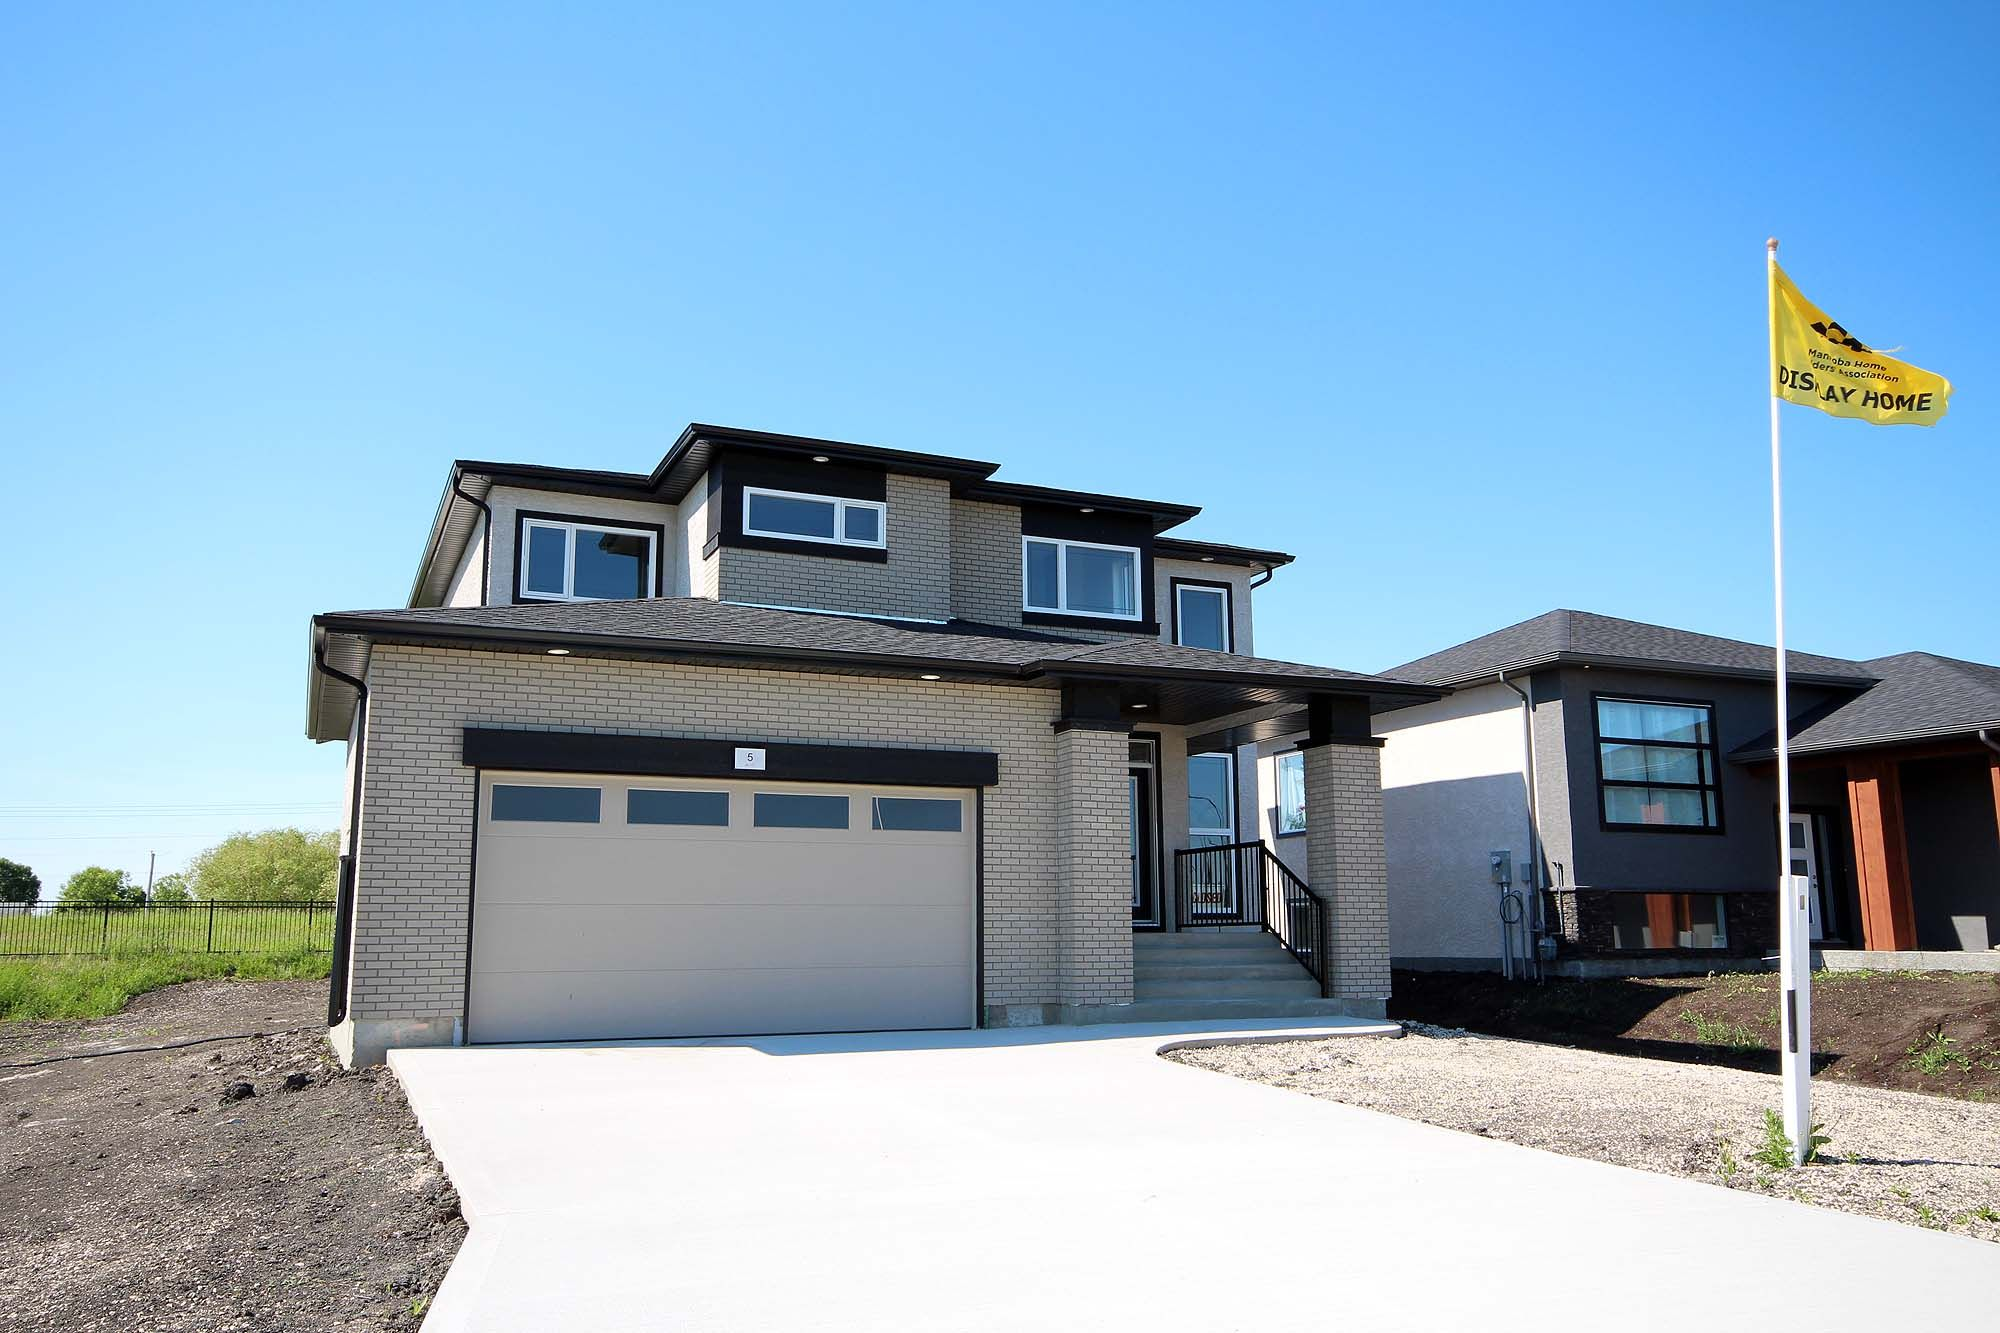 Main Photo: 5 Chimney Swift Way in St Adolphe: Tourond Creek Residential for sale (R07)  : MLS®# 202007453